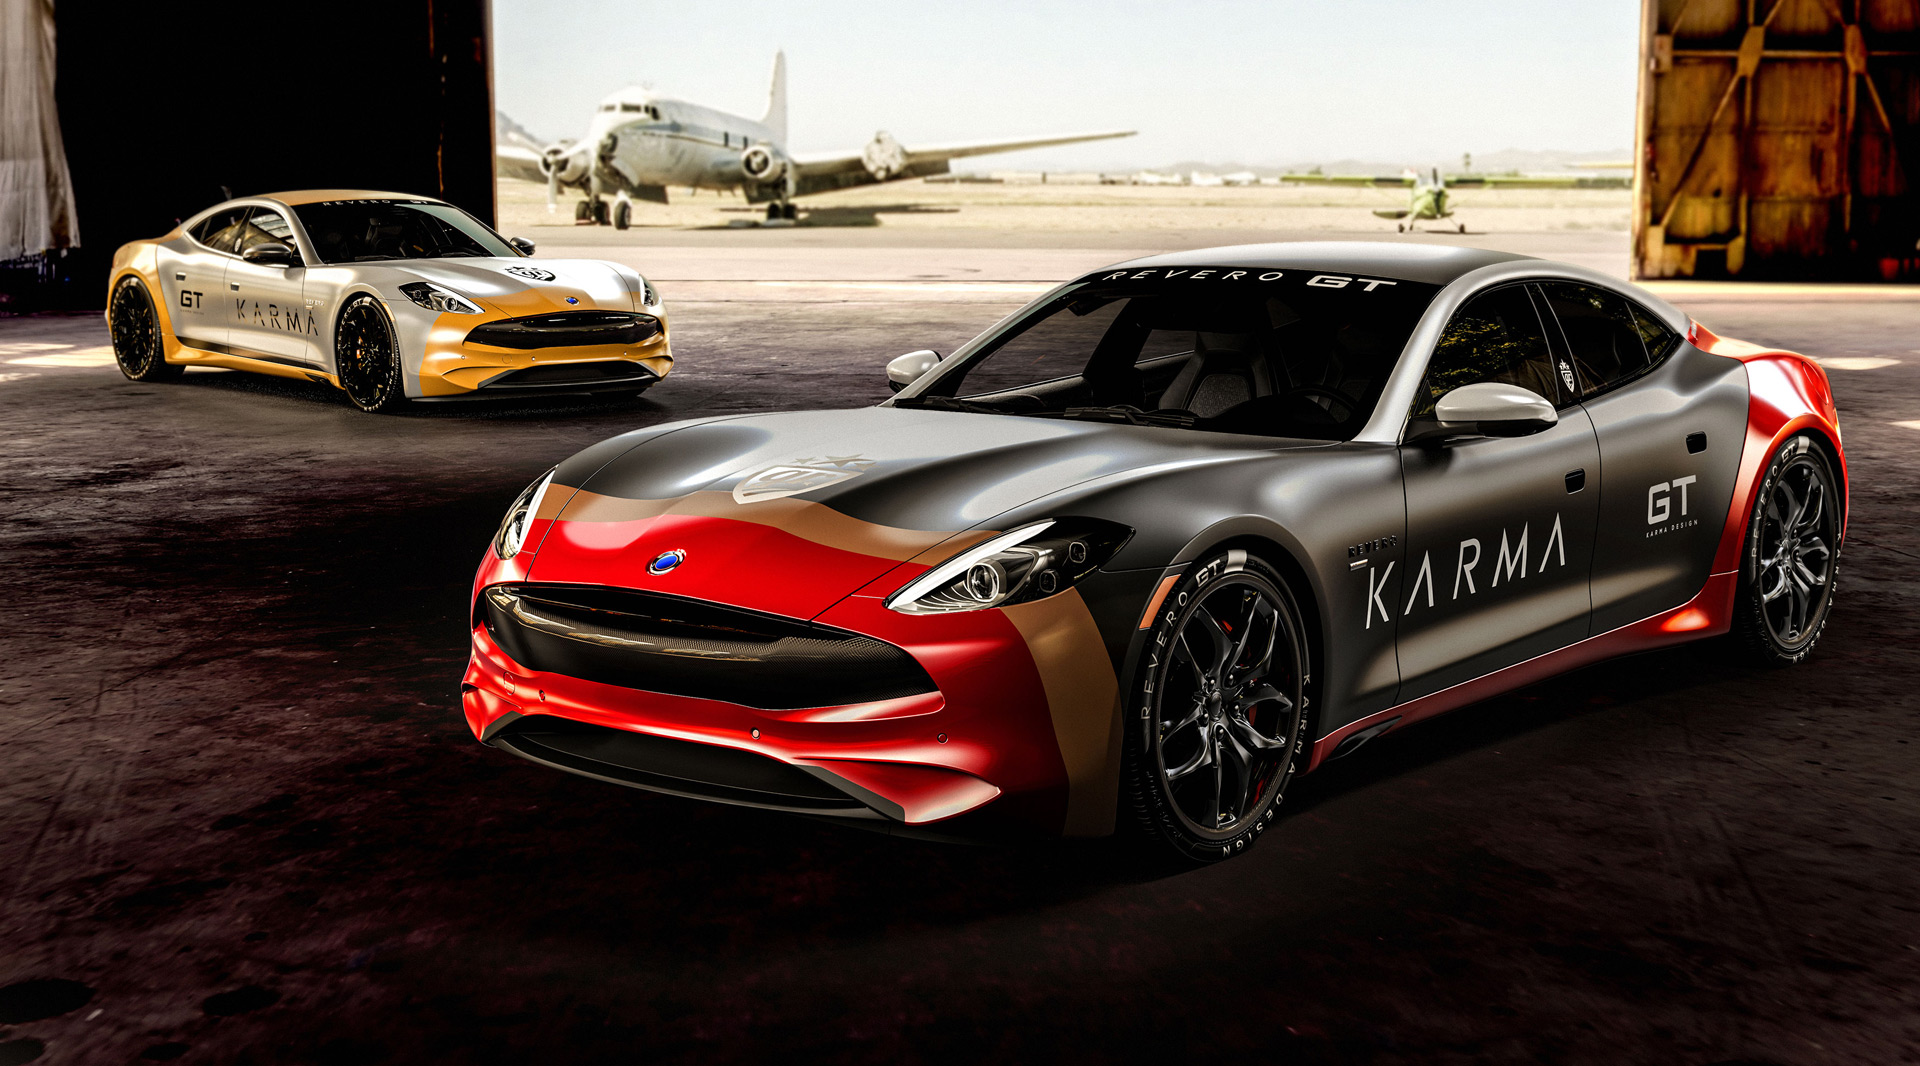 Karma revero gt gets p 51 mustang inspired livery for goldrush rally